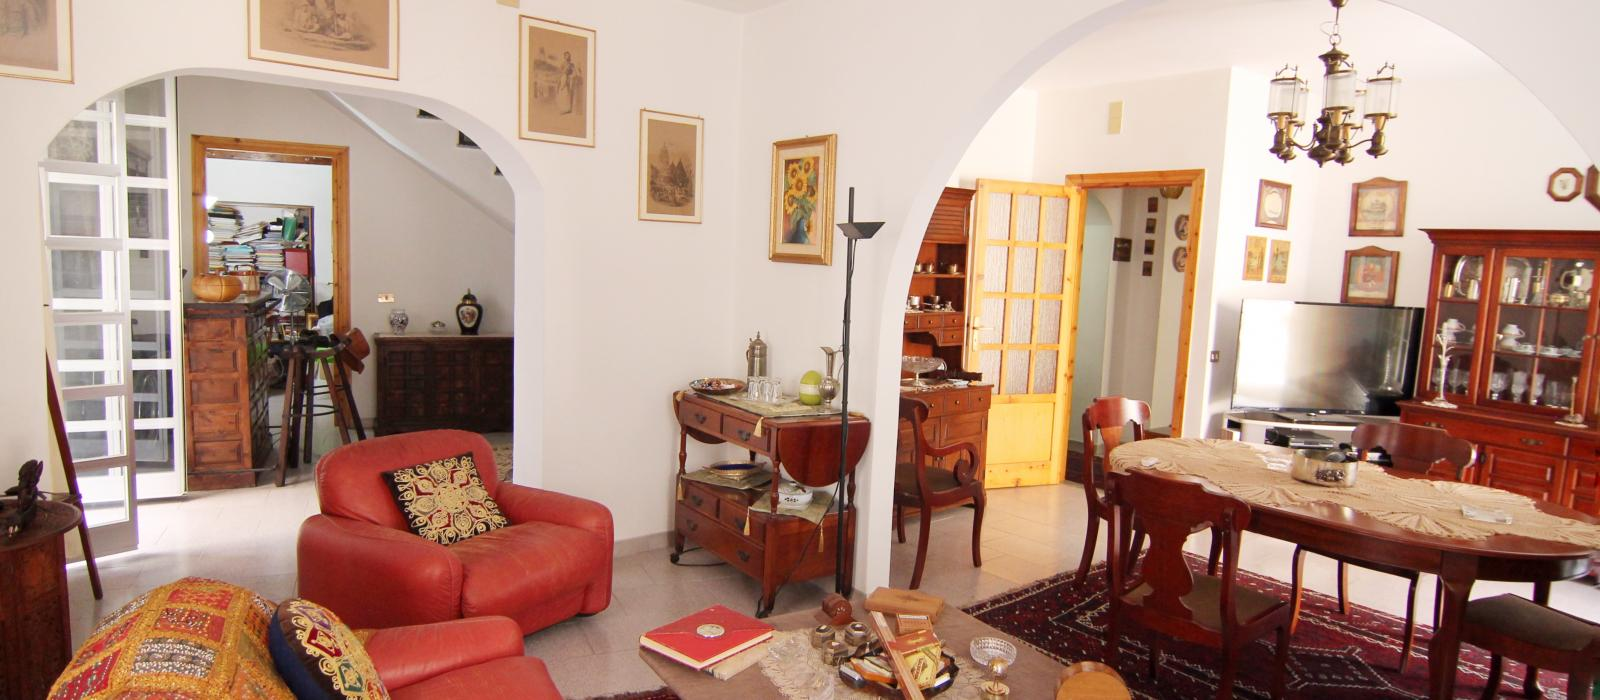 GREAT HOUSE IN VIA CAVOUR